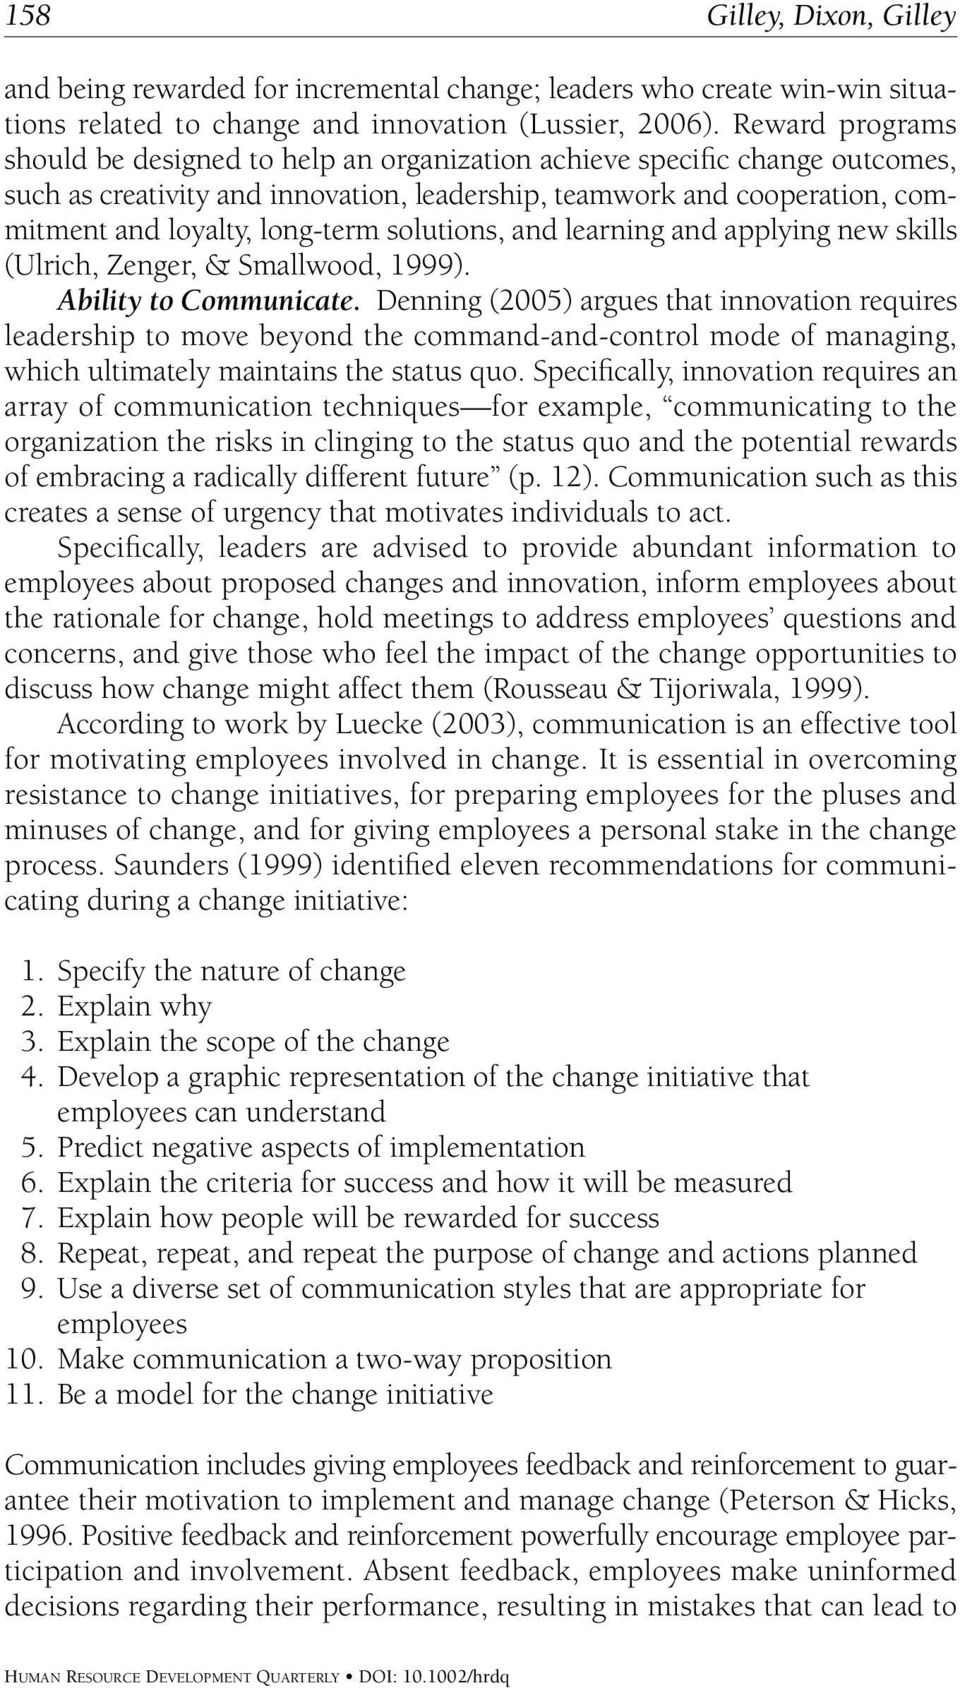 solutions, and learning and applying new skills (Ulrich, Zenger, & Smallwood, 1999). Ability to Communicate.